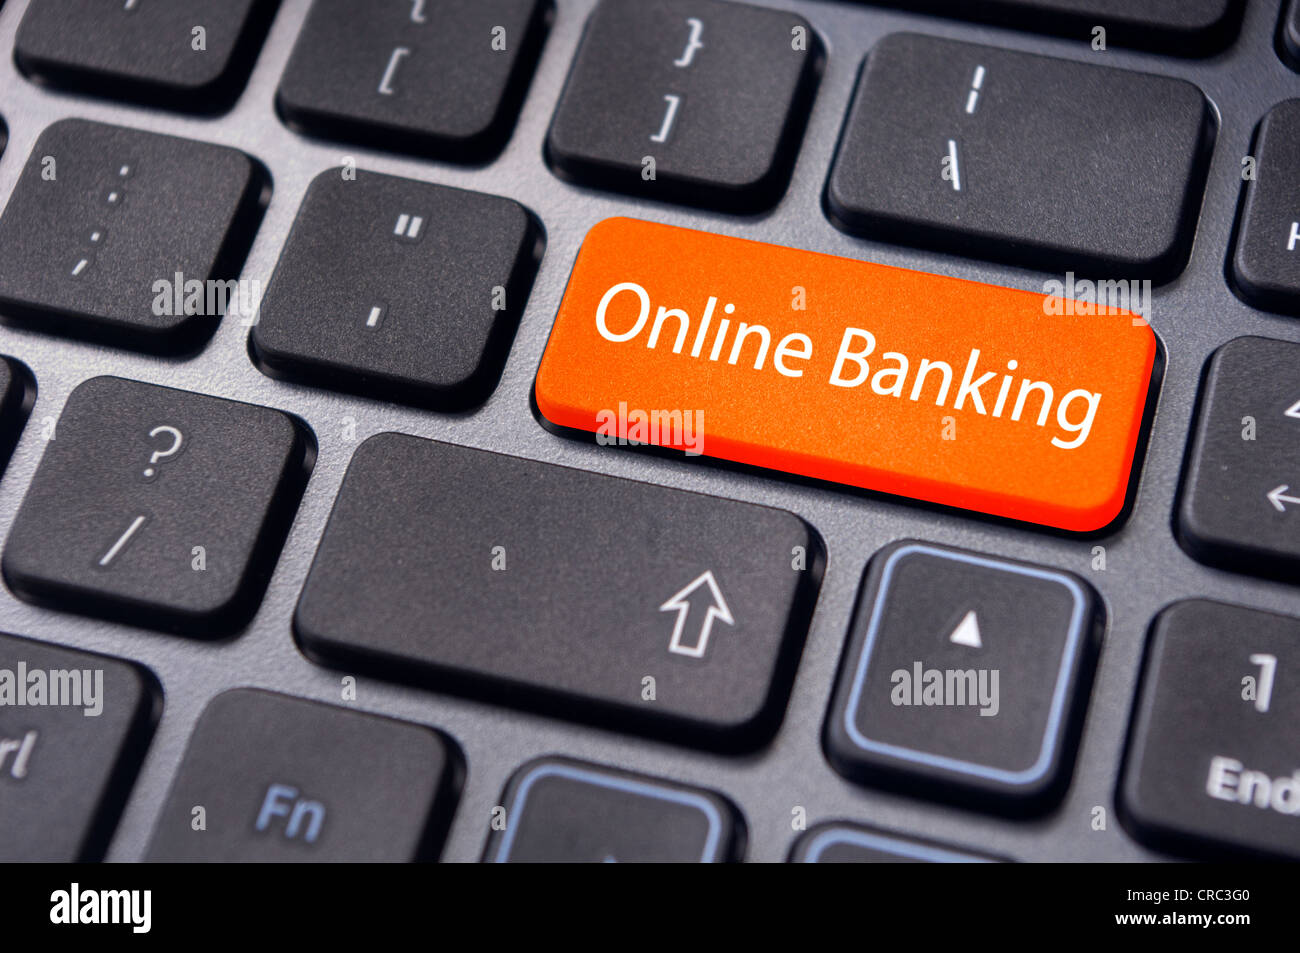 keyboard enter key with message, for online or internet banking concepts. - Stock Image